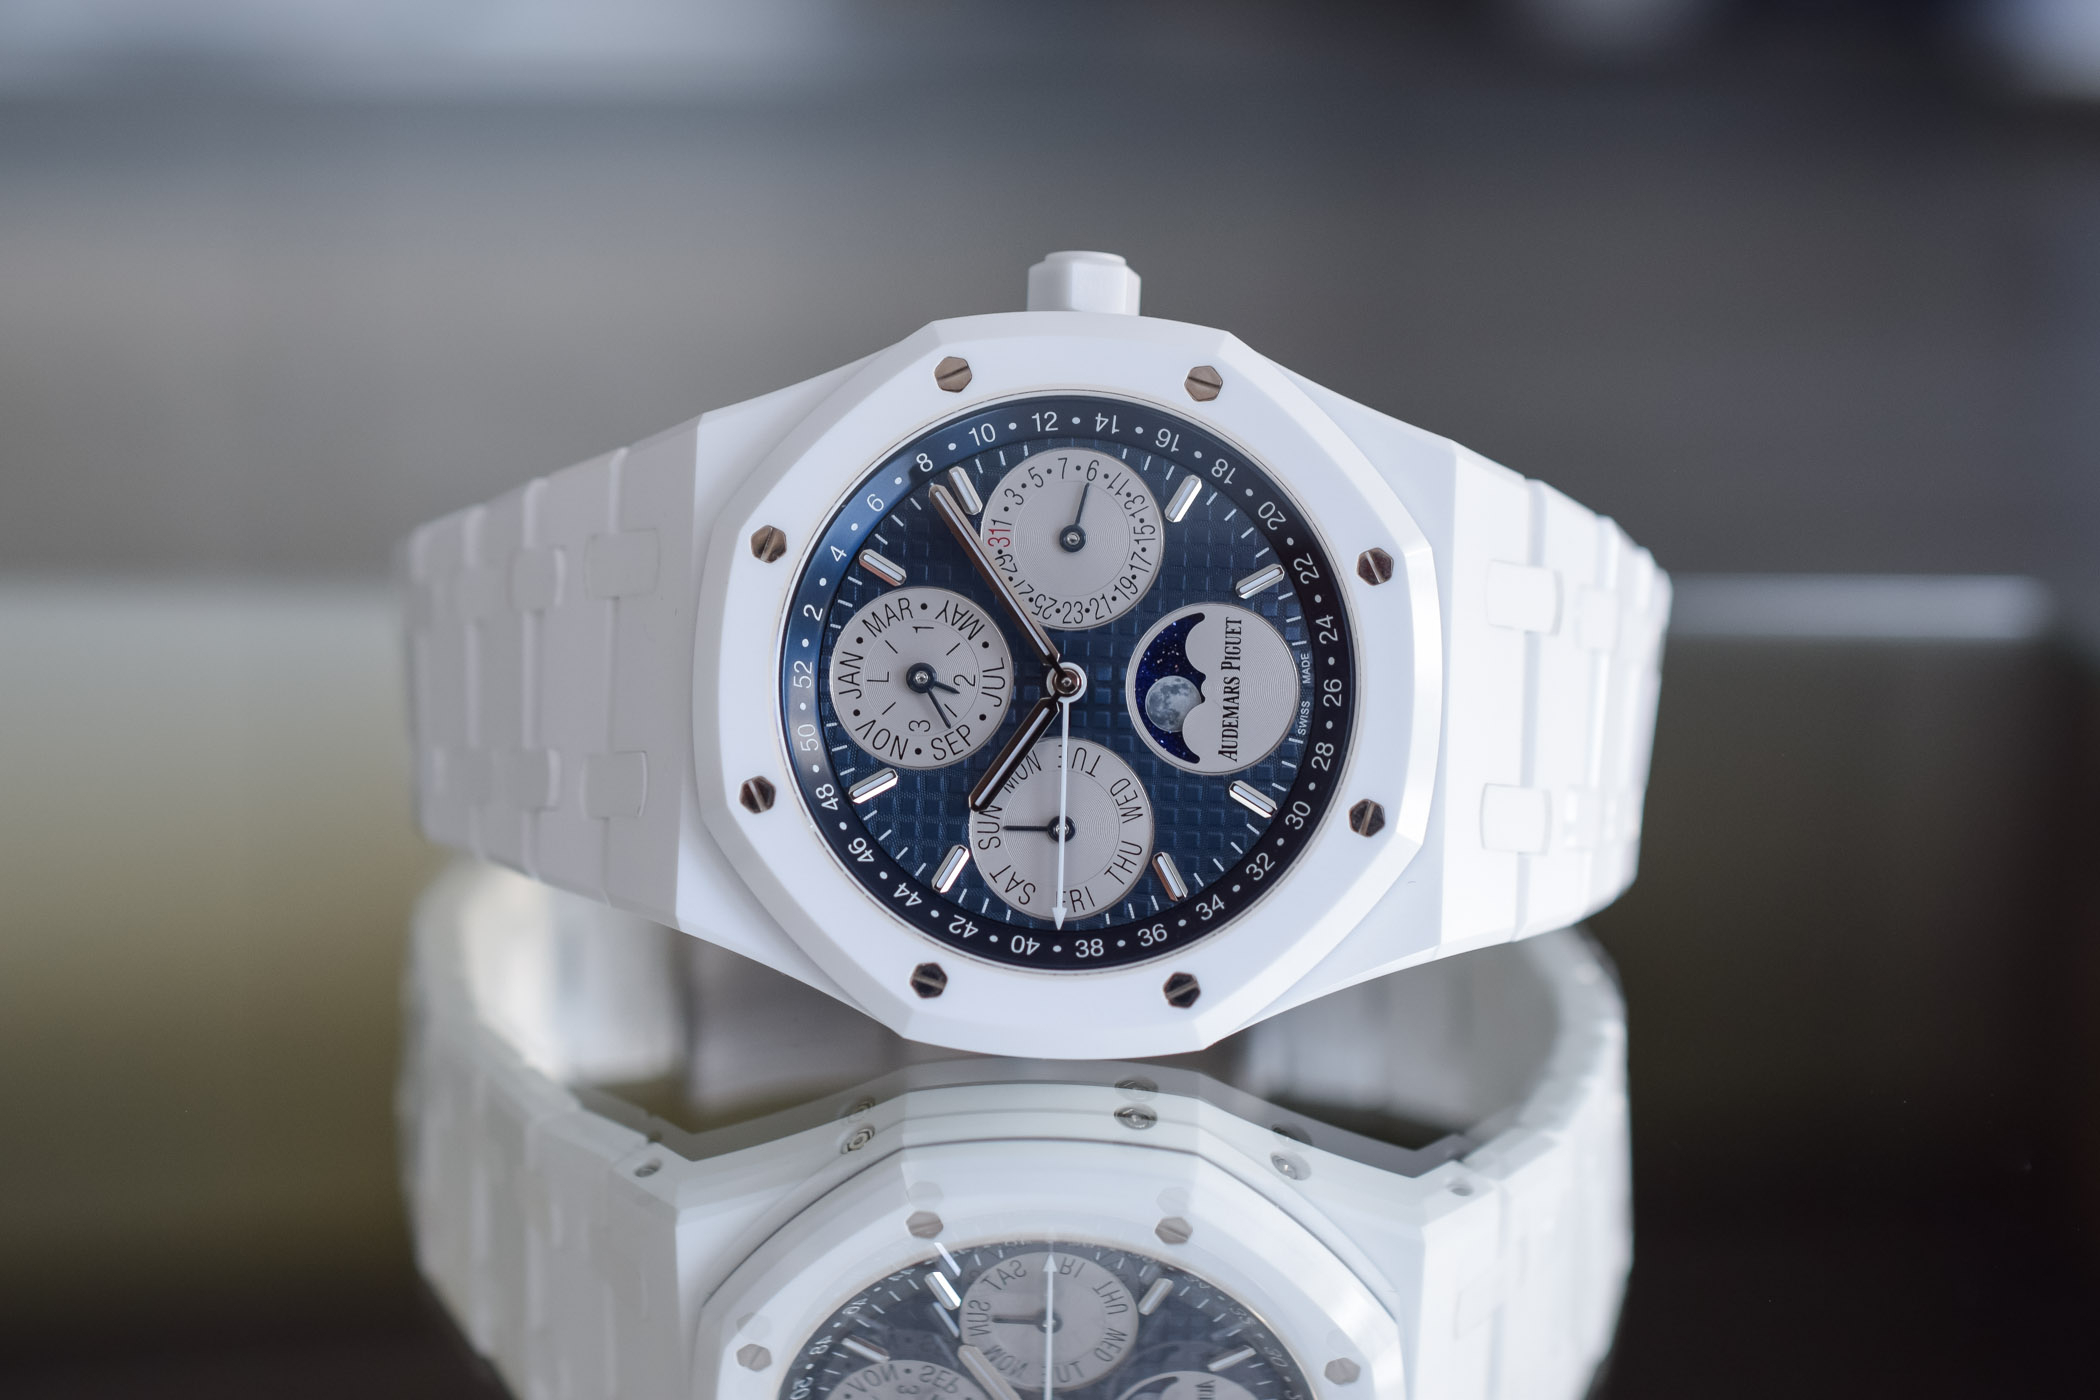 Audemars Piguet Royal Oak Perpetual Calendar White Ceramic